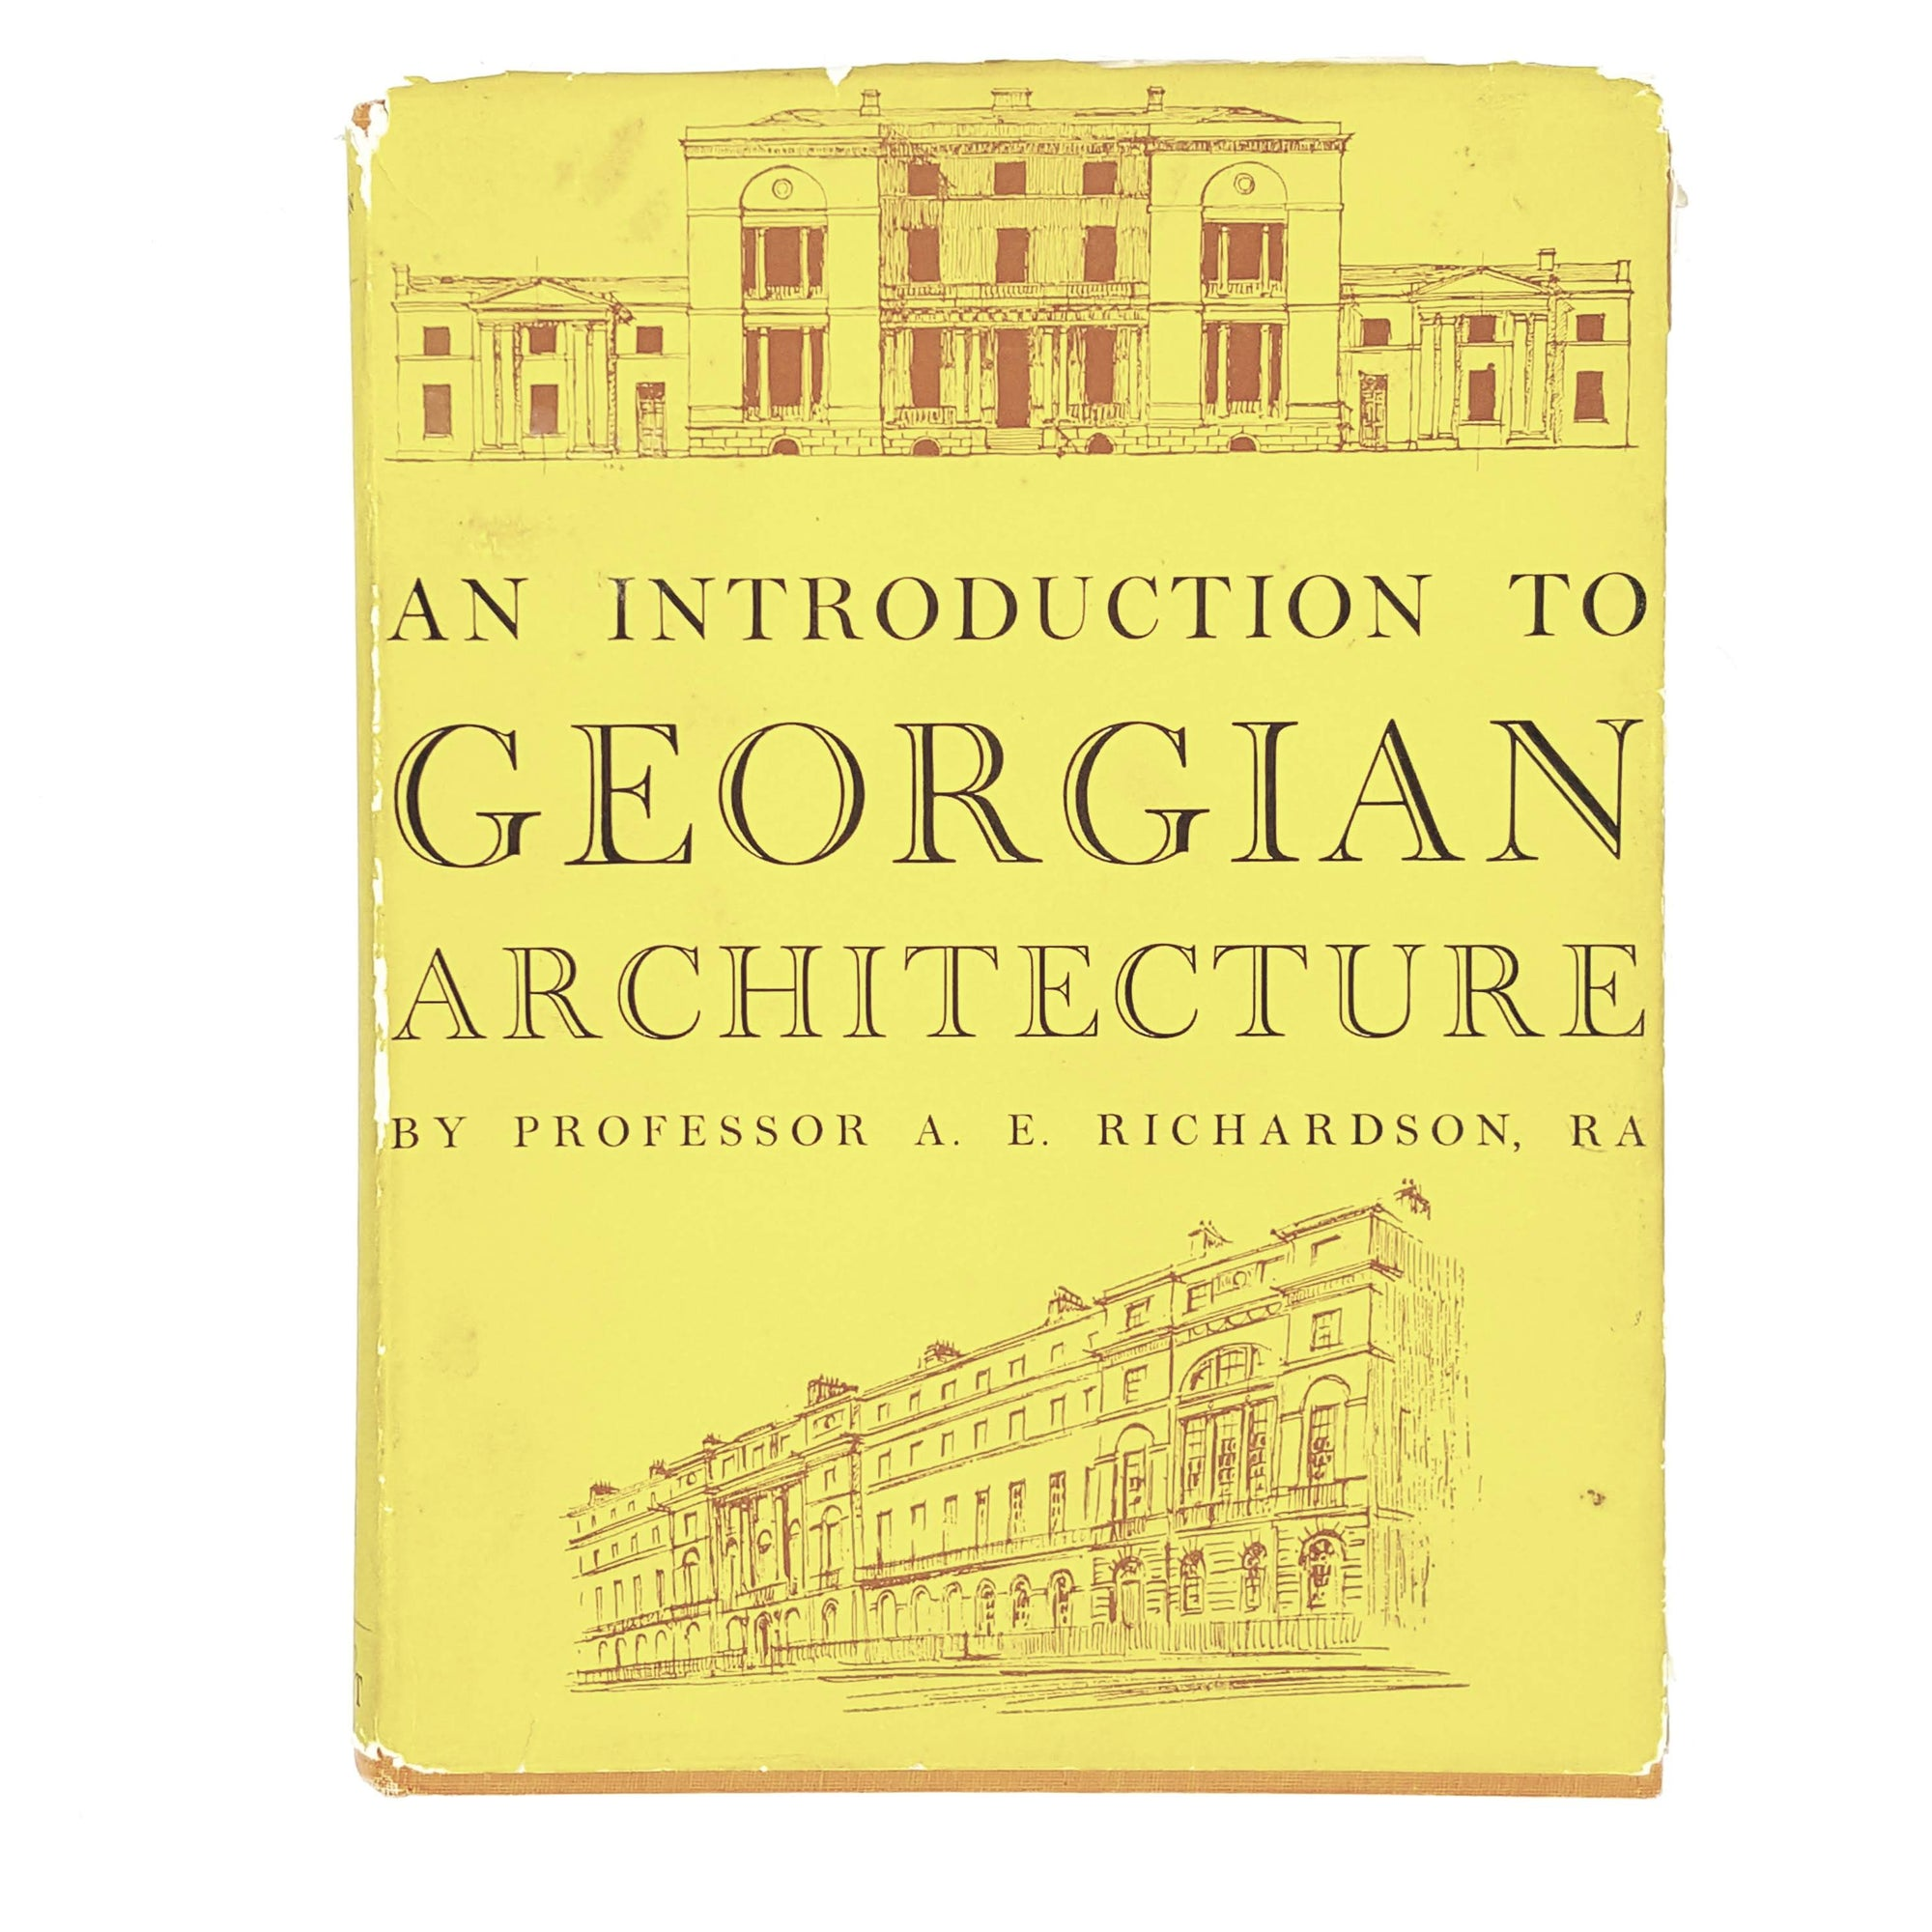 An Introduction to Georgian Architecture by Professor A. E. Richardson 1949